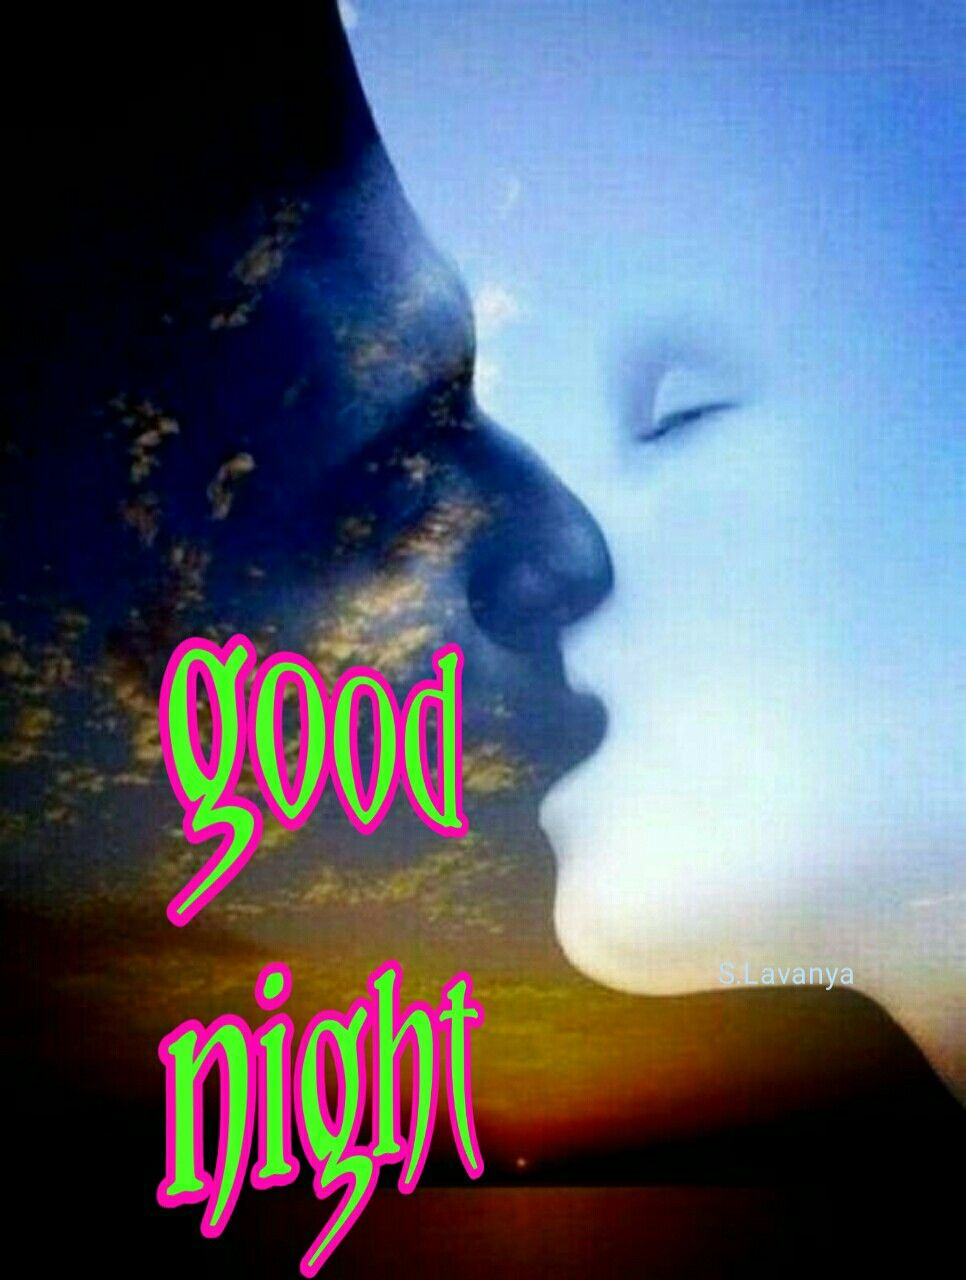 Sweet Dreams My Love May All Your Worries And Turmoils Fade